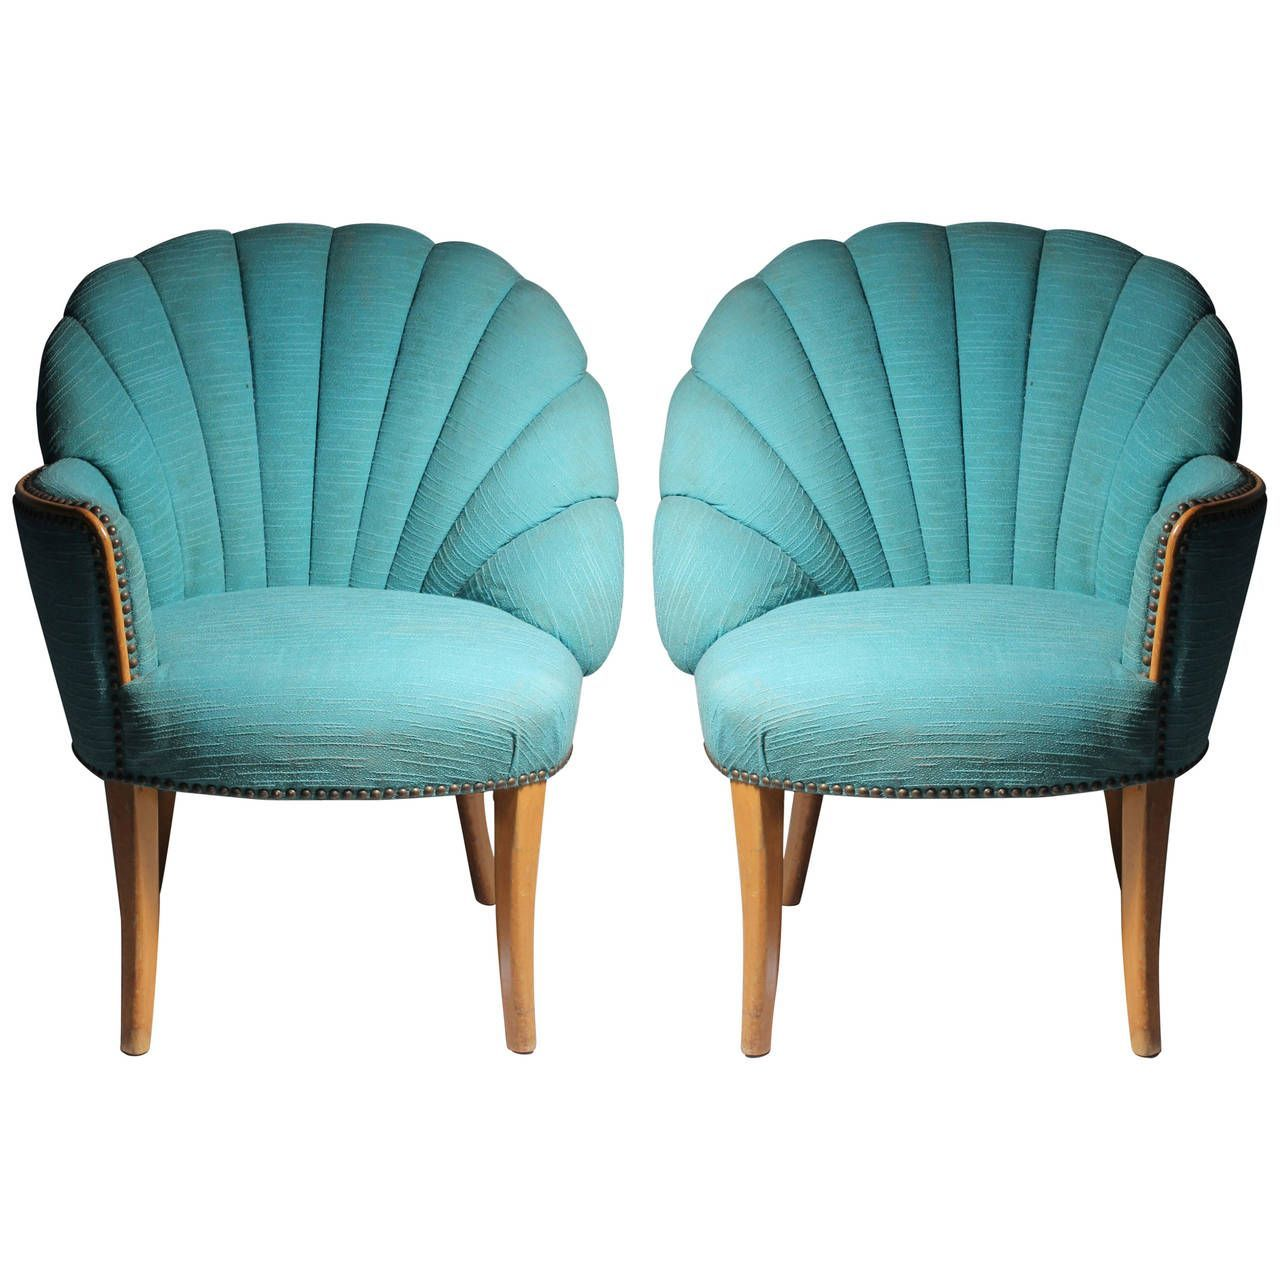 row accent scovoetbal steel michaels card cushion w loose number phone chair north seat furniture hollywood club credit